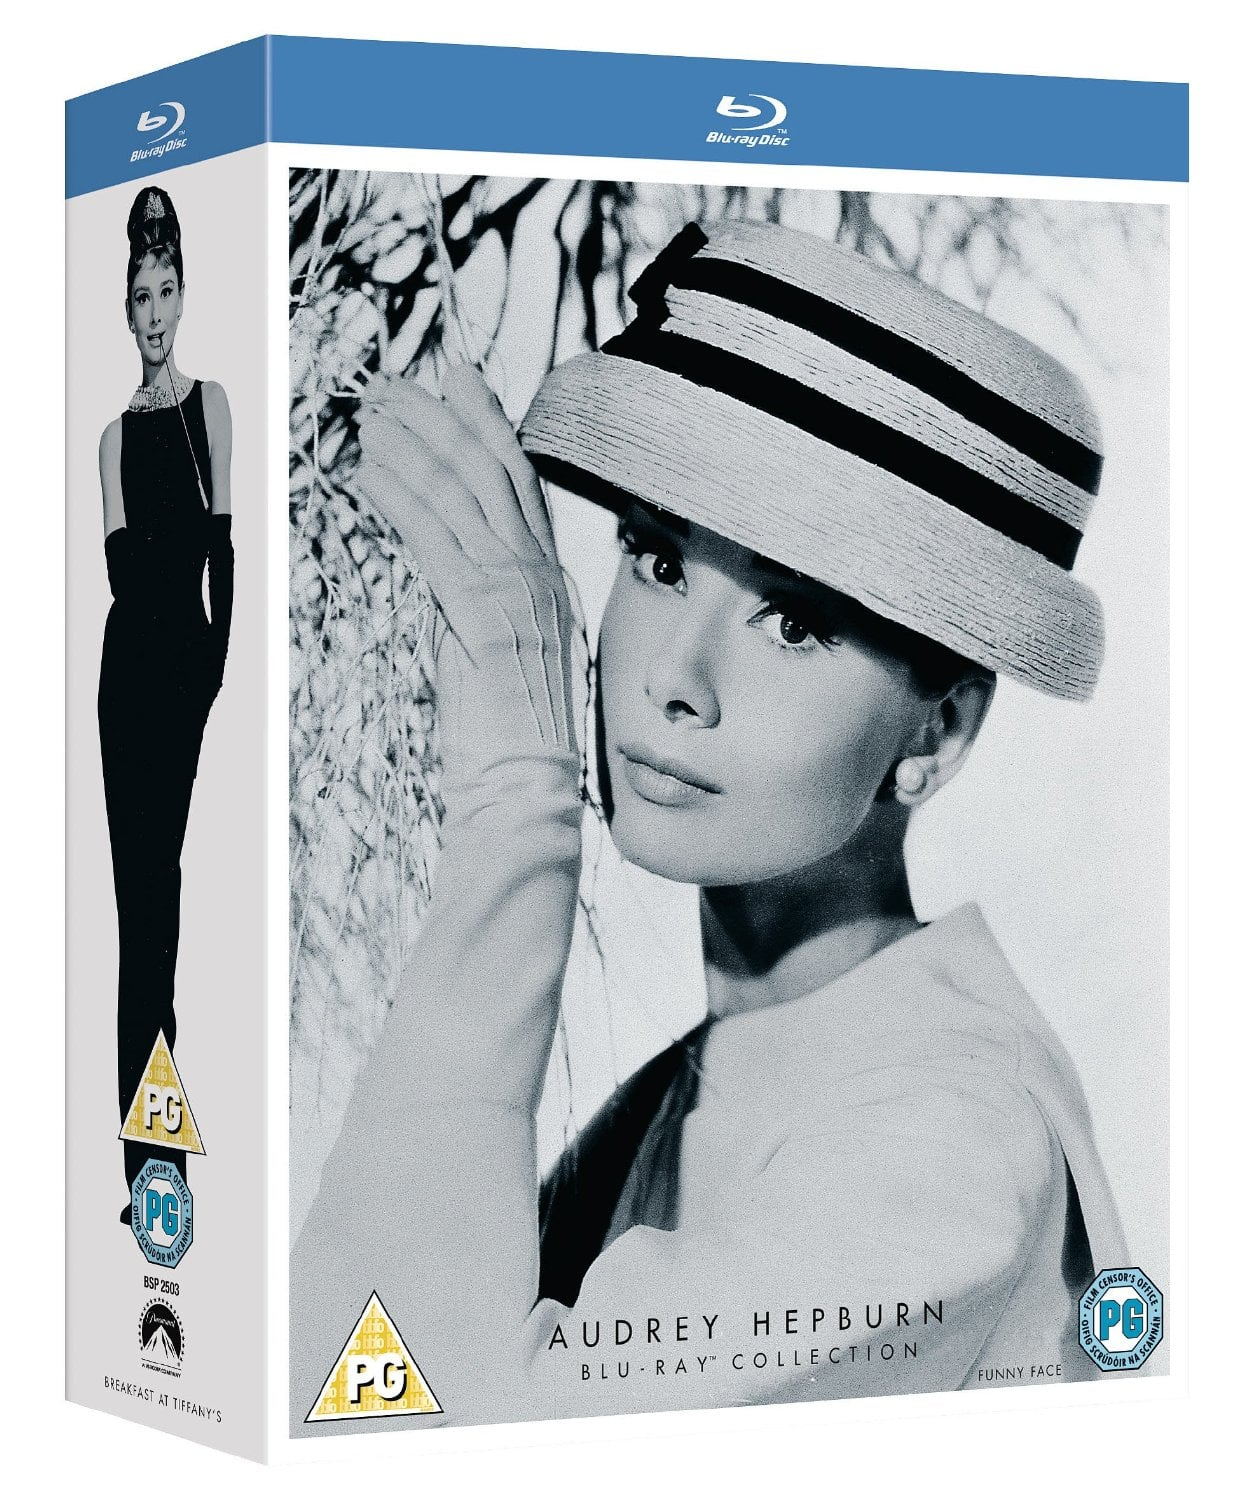 Audrey Hepburn Collection (Region Free Blu-ray)  $12.50